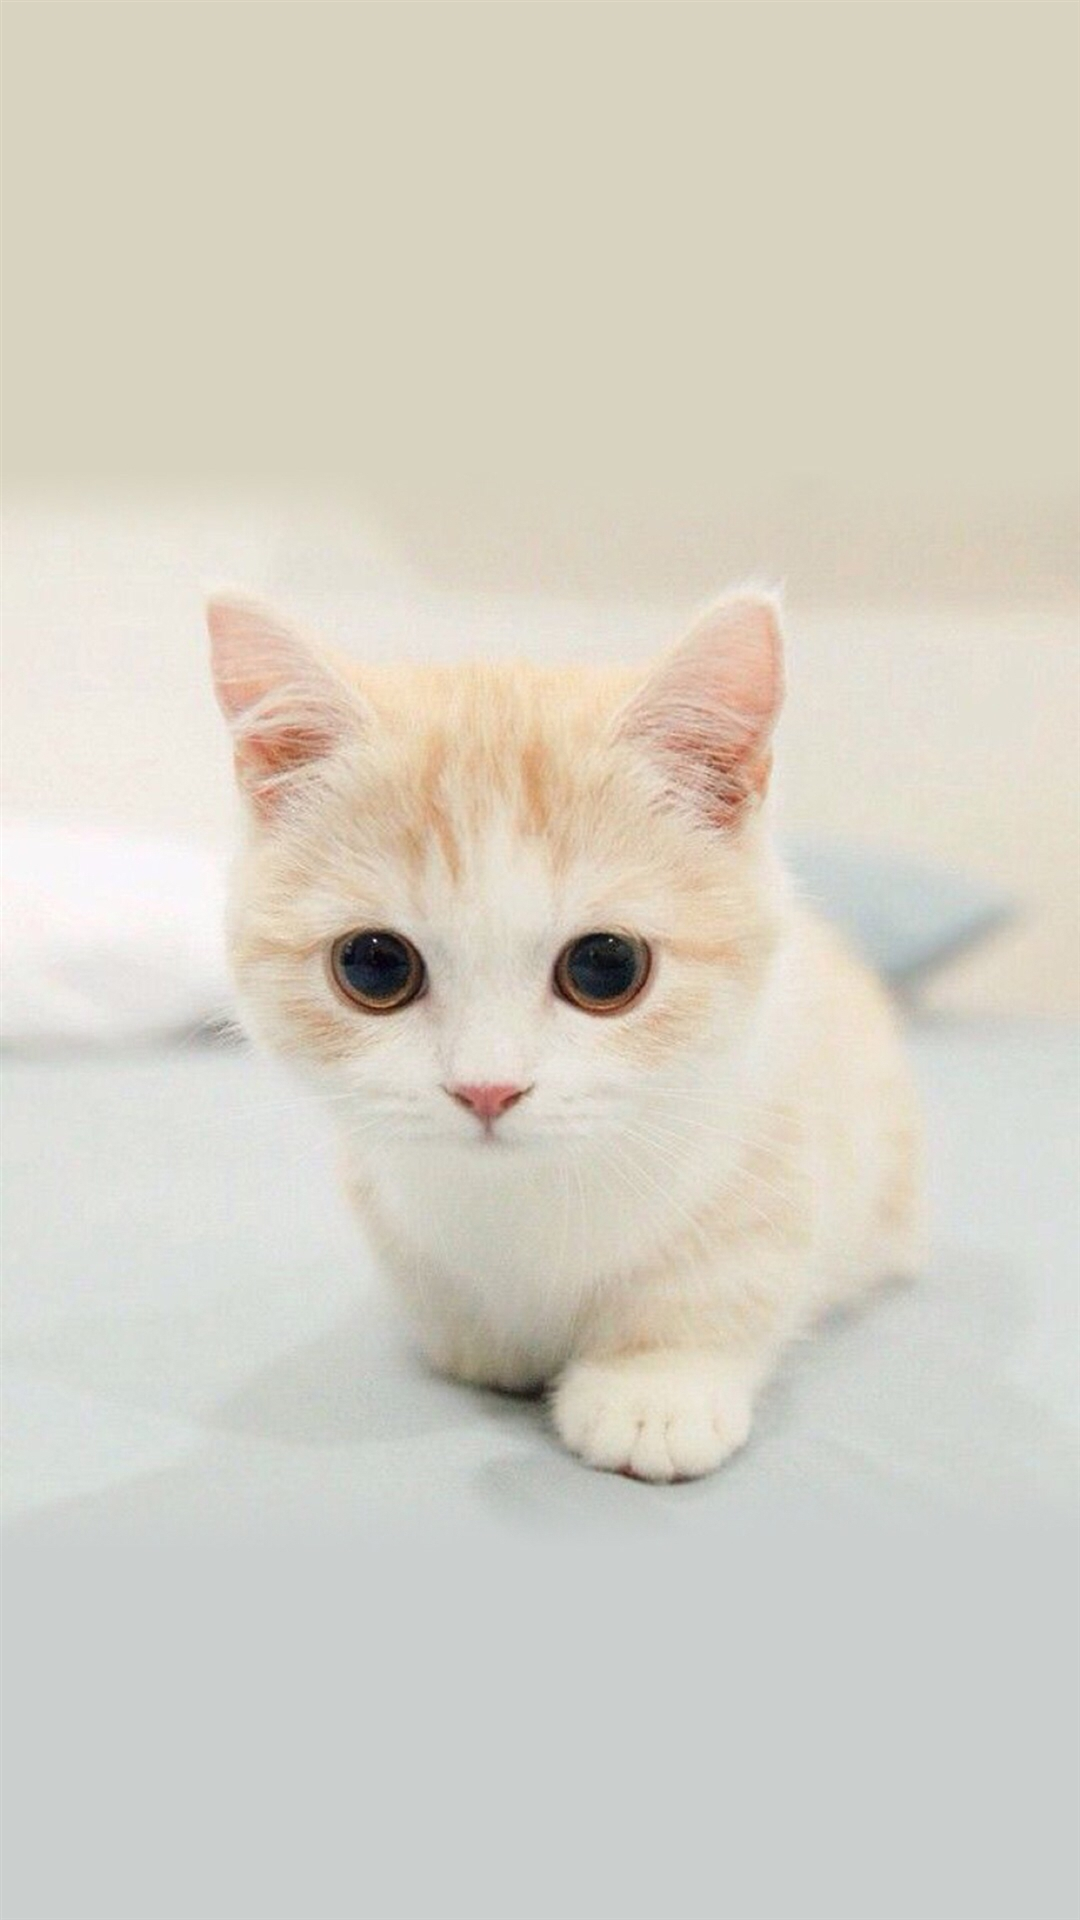 Cute Cat Images For Wallpaper 手绘小猫可爱壁纸 皮皮网